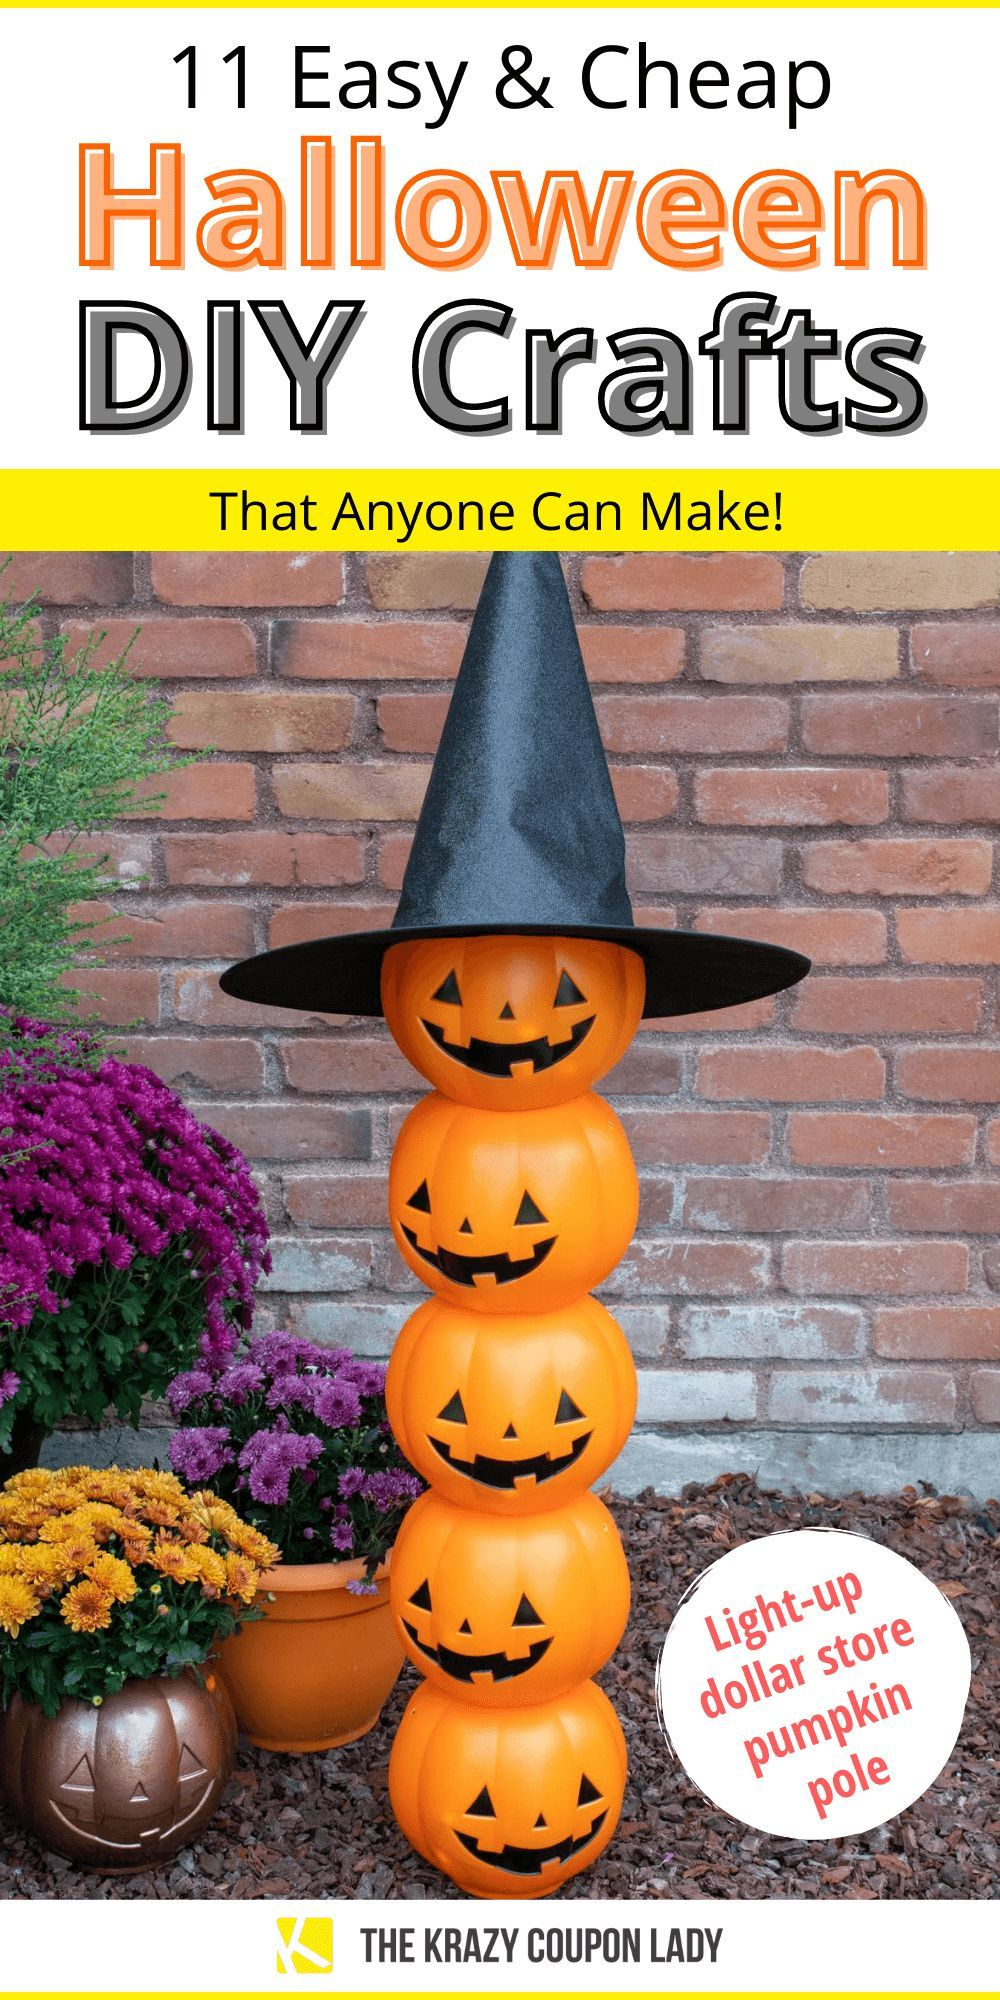 11 Easy & Cheap DIY Halloween Crafts Anyone Can Make in